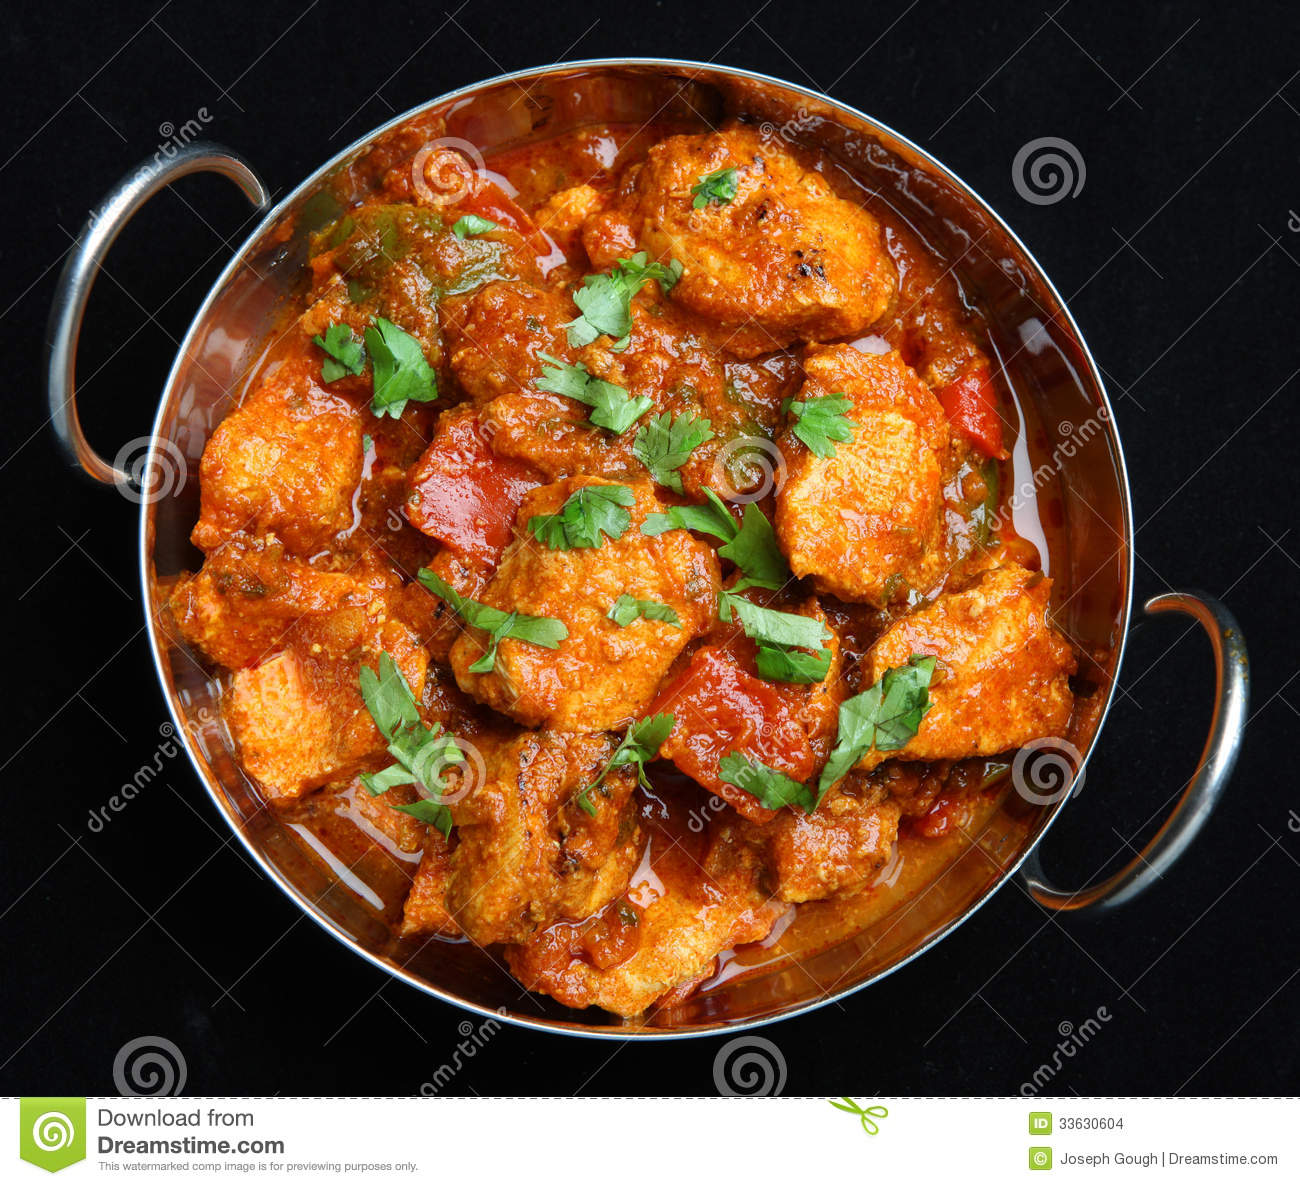 indian chicken jalfrezi curry food stock photo image of chicken cilantro 33630604. Black Bedroom Furniture Sets. Home Design Ideas